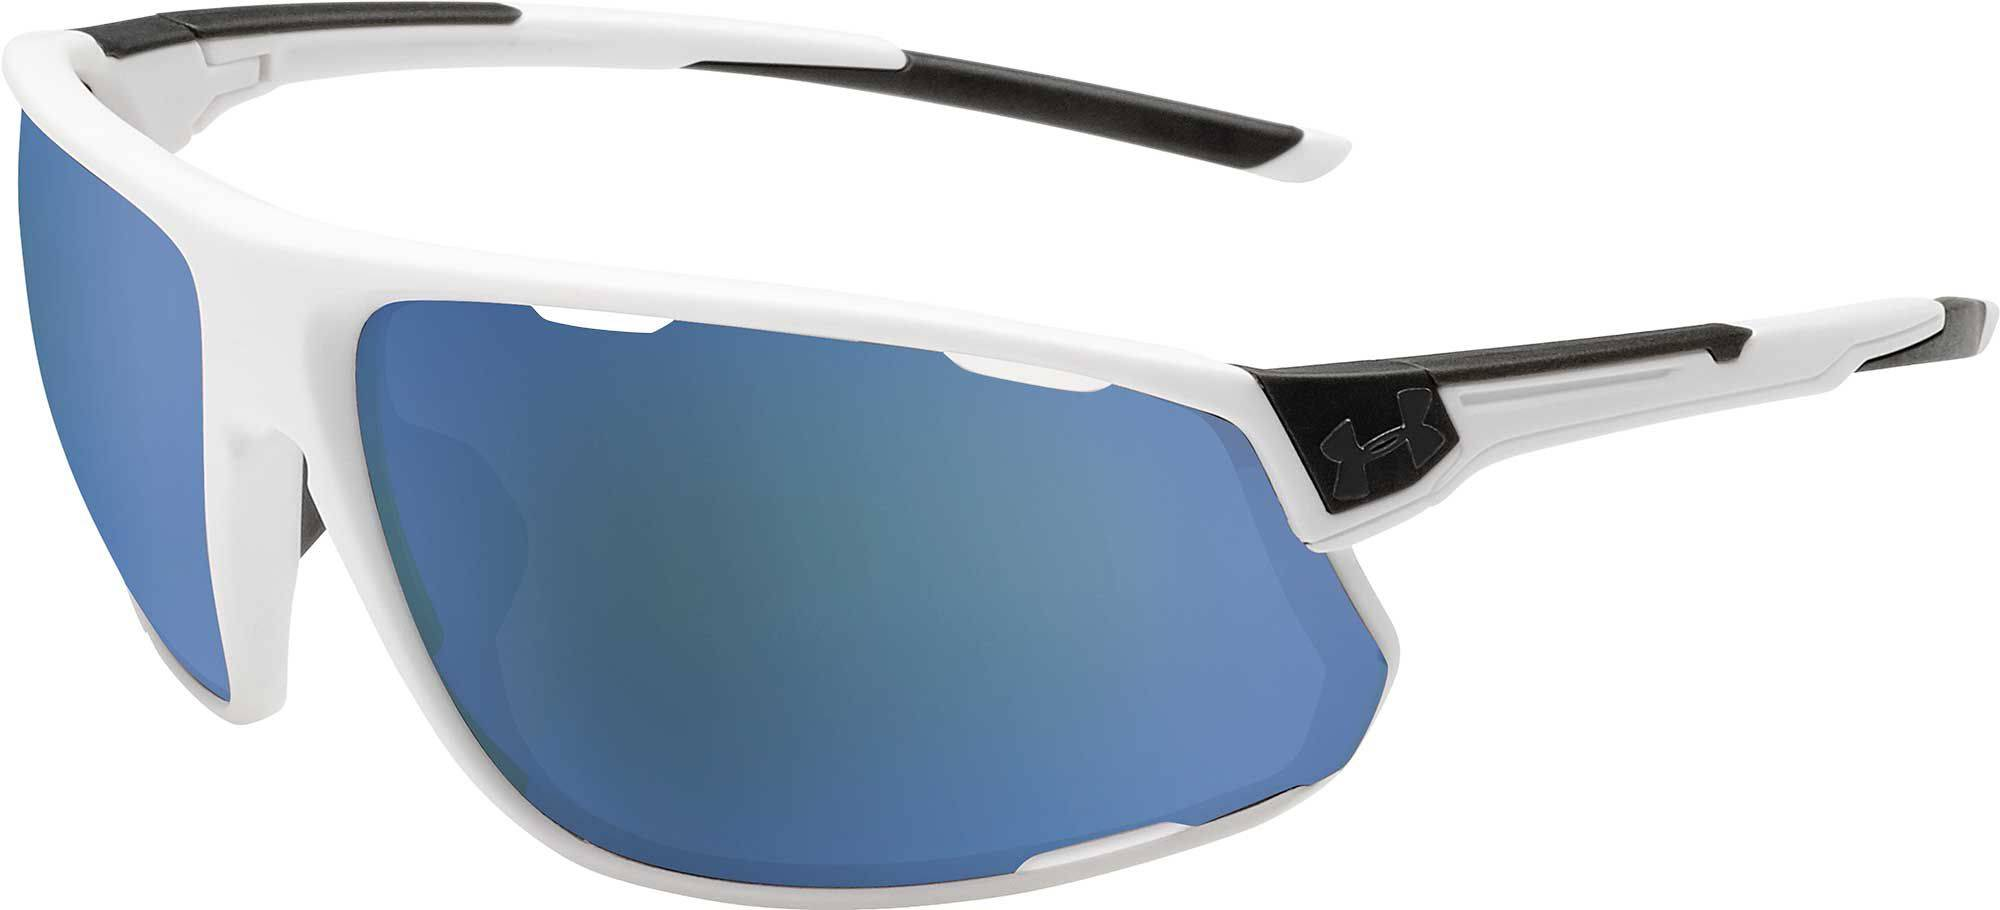 Under Armour Strive Tuned Baseball Sunglasses